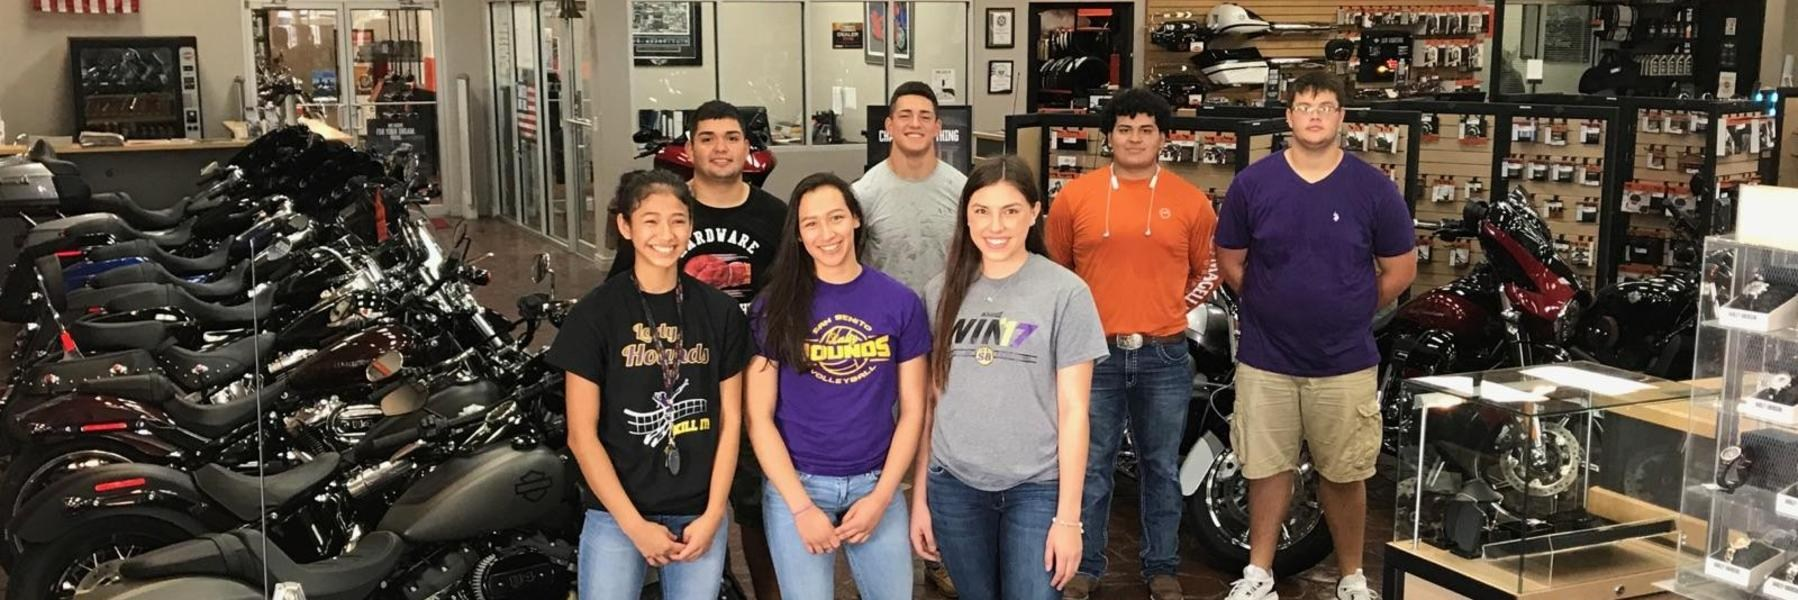 San Benito athletes are doing their part to assist with Hurricane Harvey relief efforts by taking donations to the local Mad Boar Harley-Davidson in San Benito.